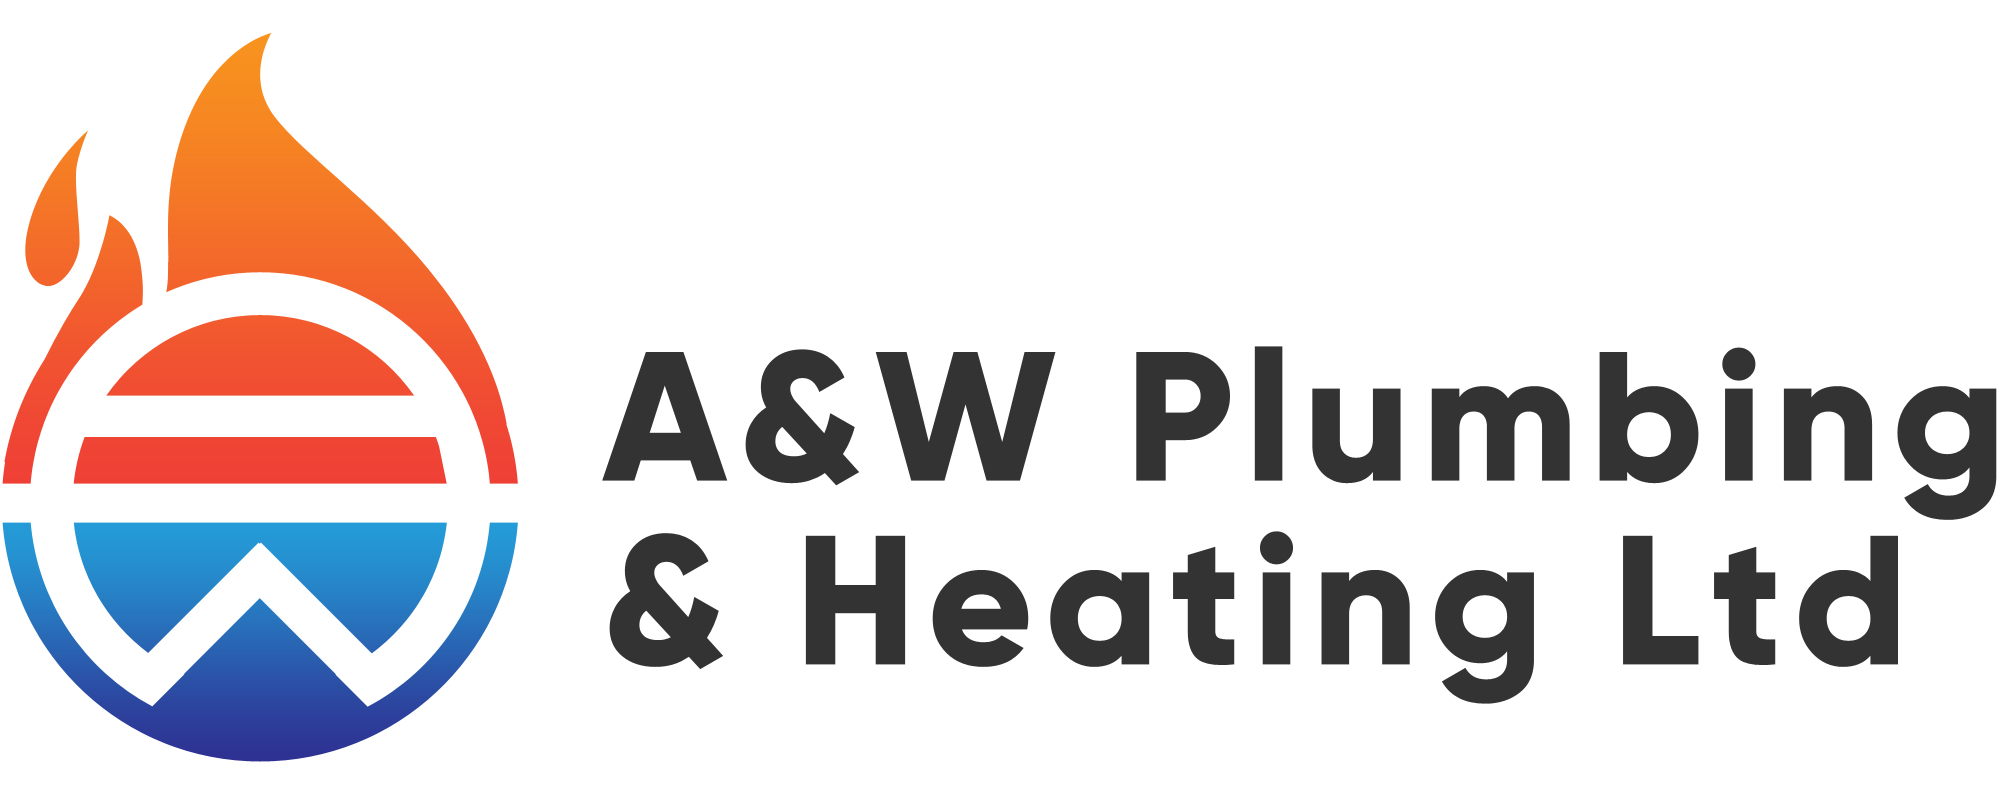 A&W Plumbing & Heating Verified Logo